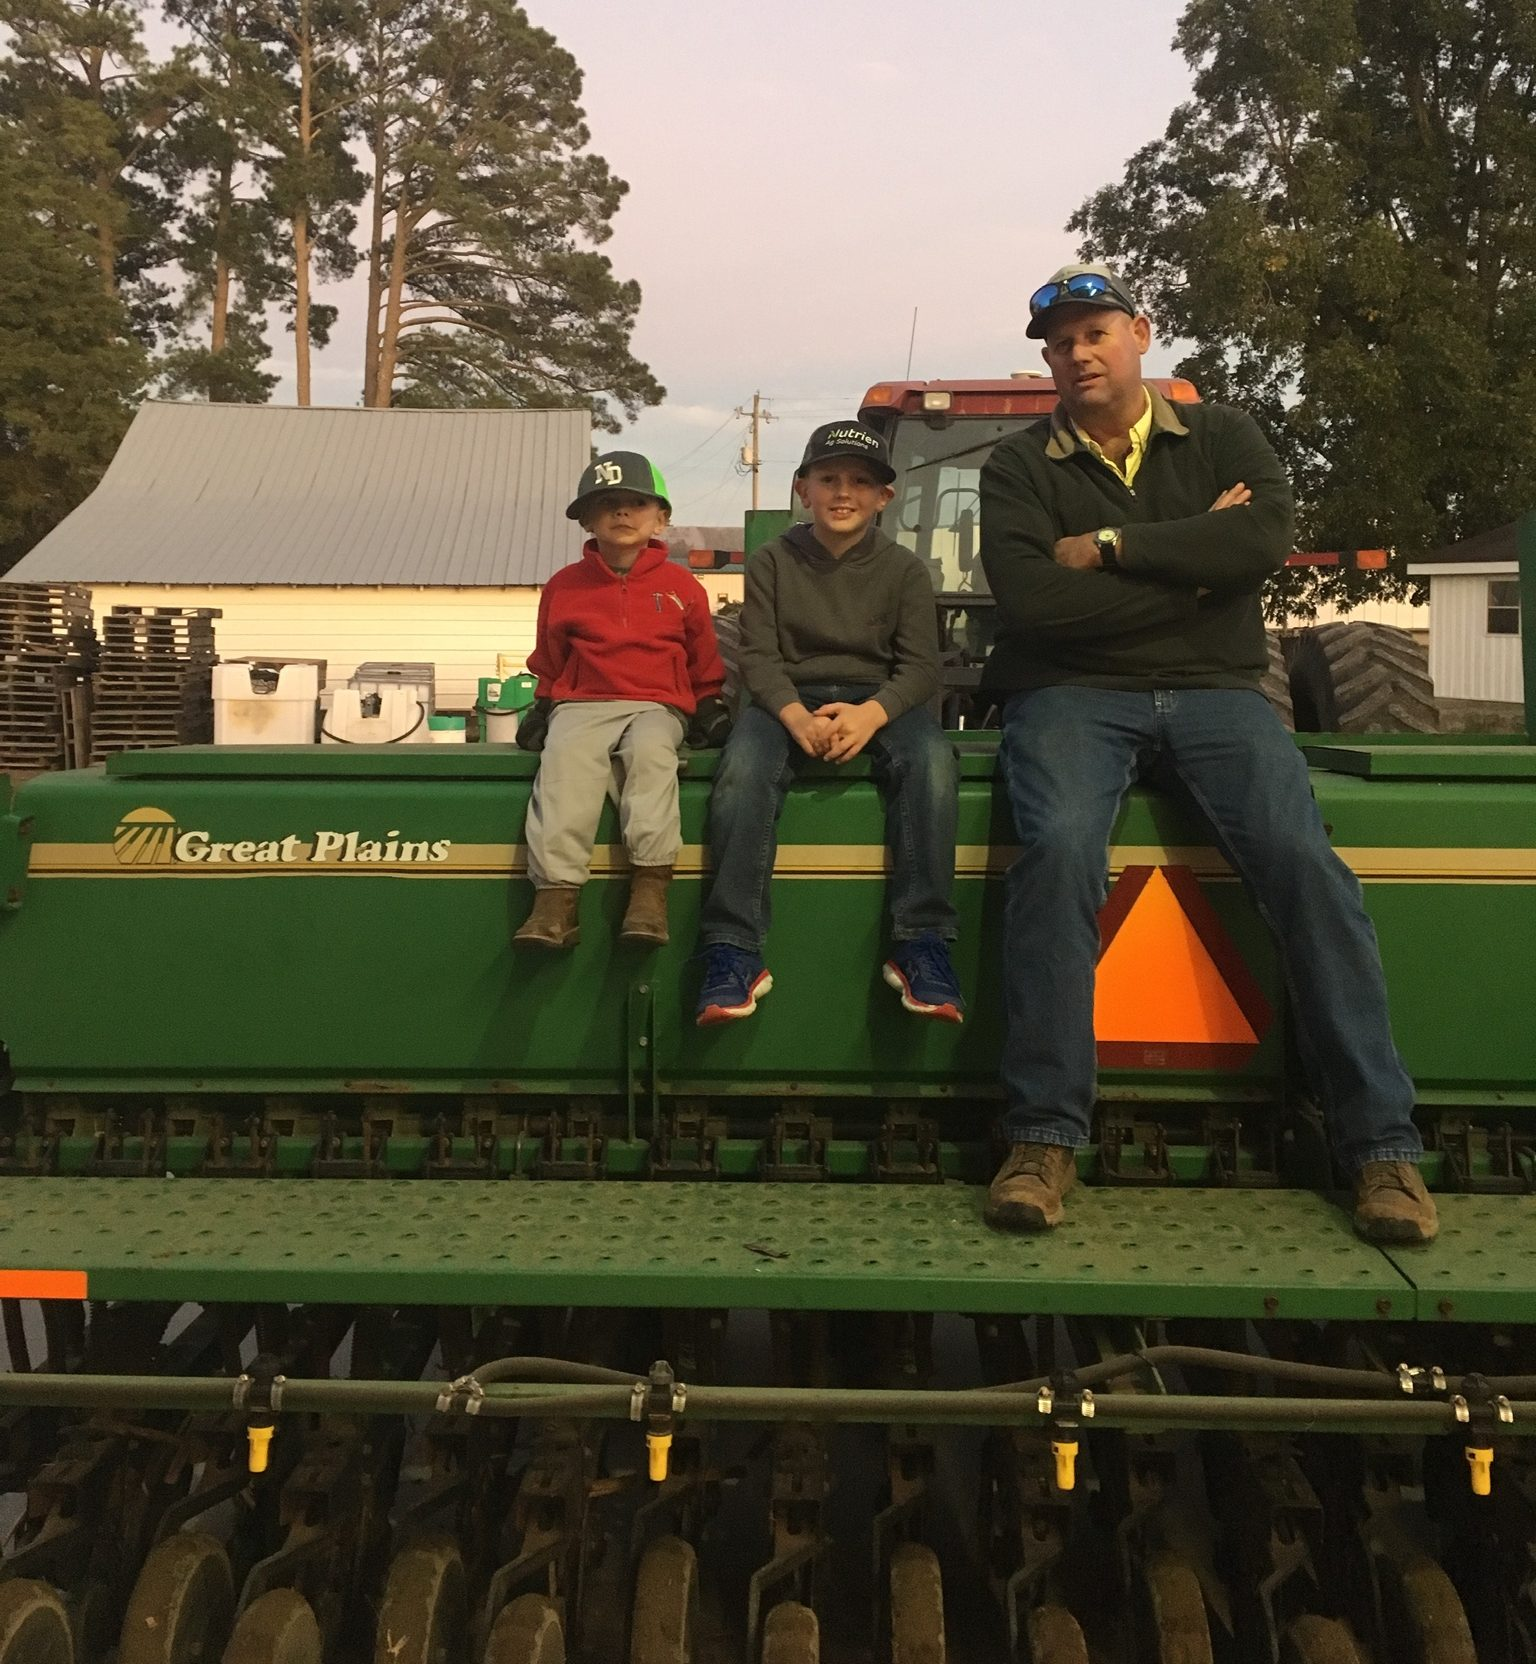 Grandfather and sons sit on a planter